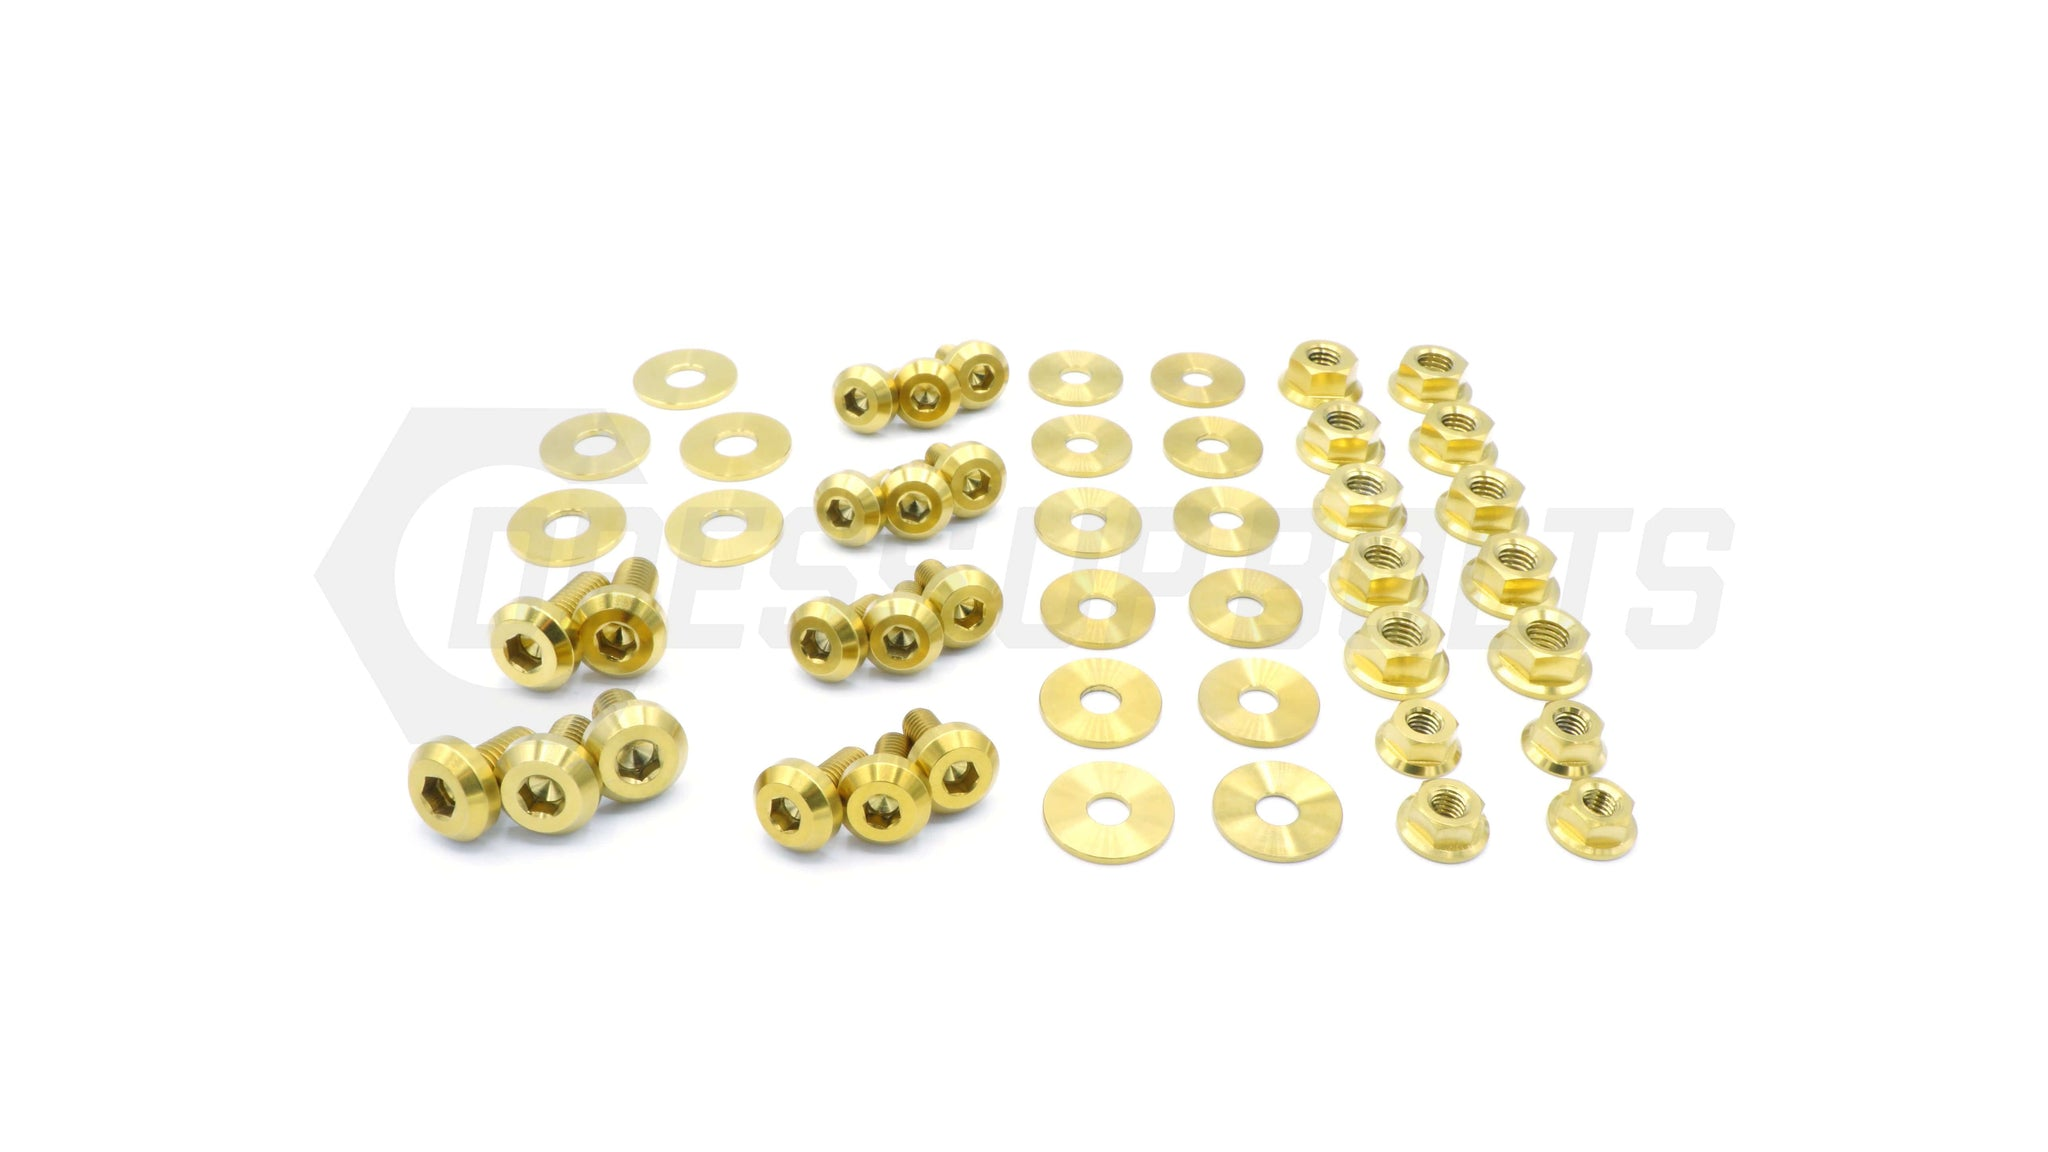 Subaru WRX and STI (2015-2020) Titanium Dress Up Bolts Engine Bay Kit - DressUpBolts.com